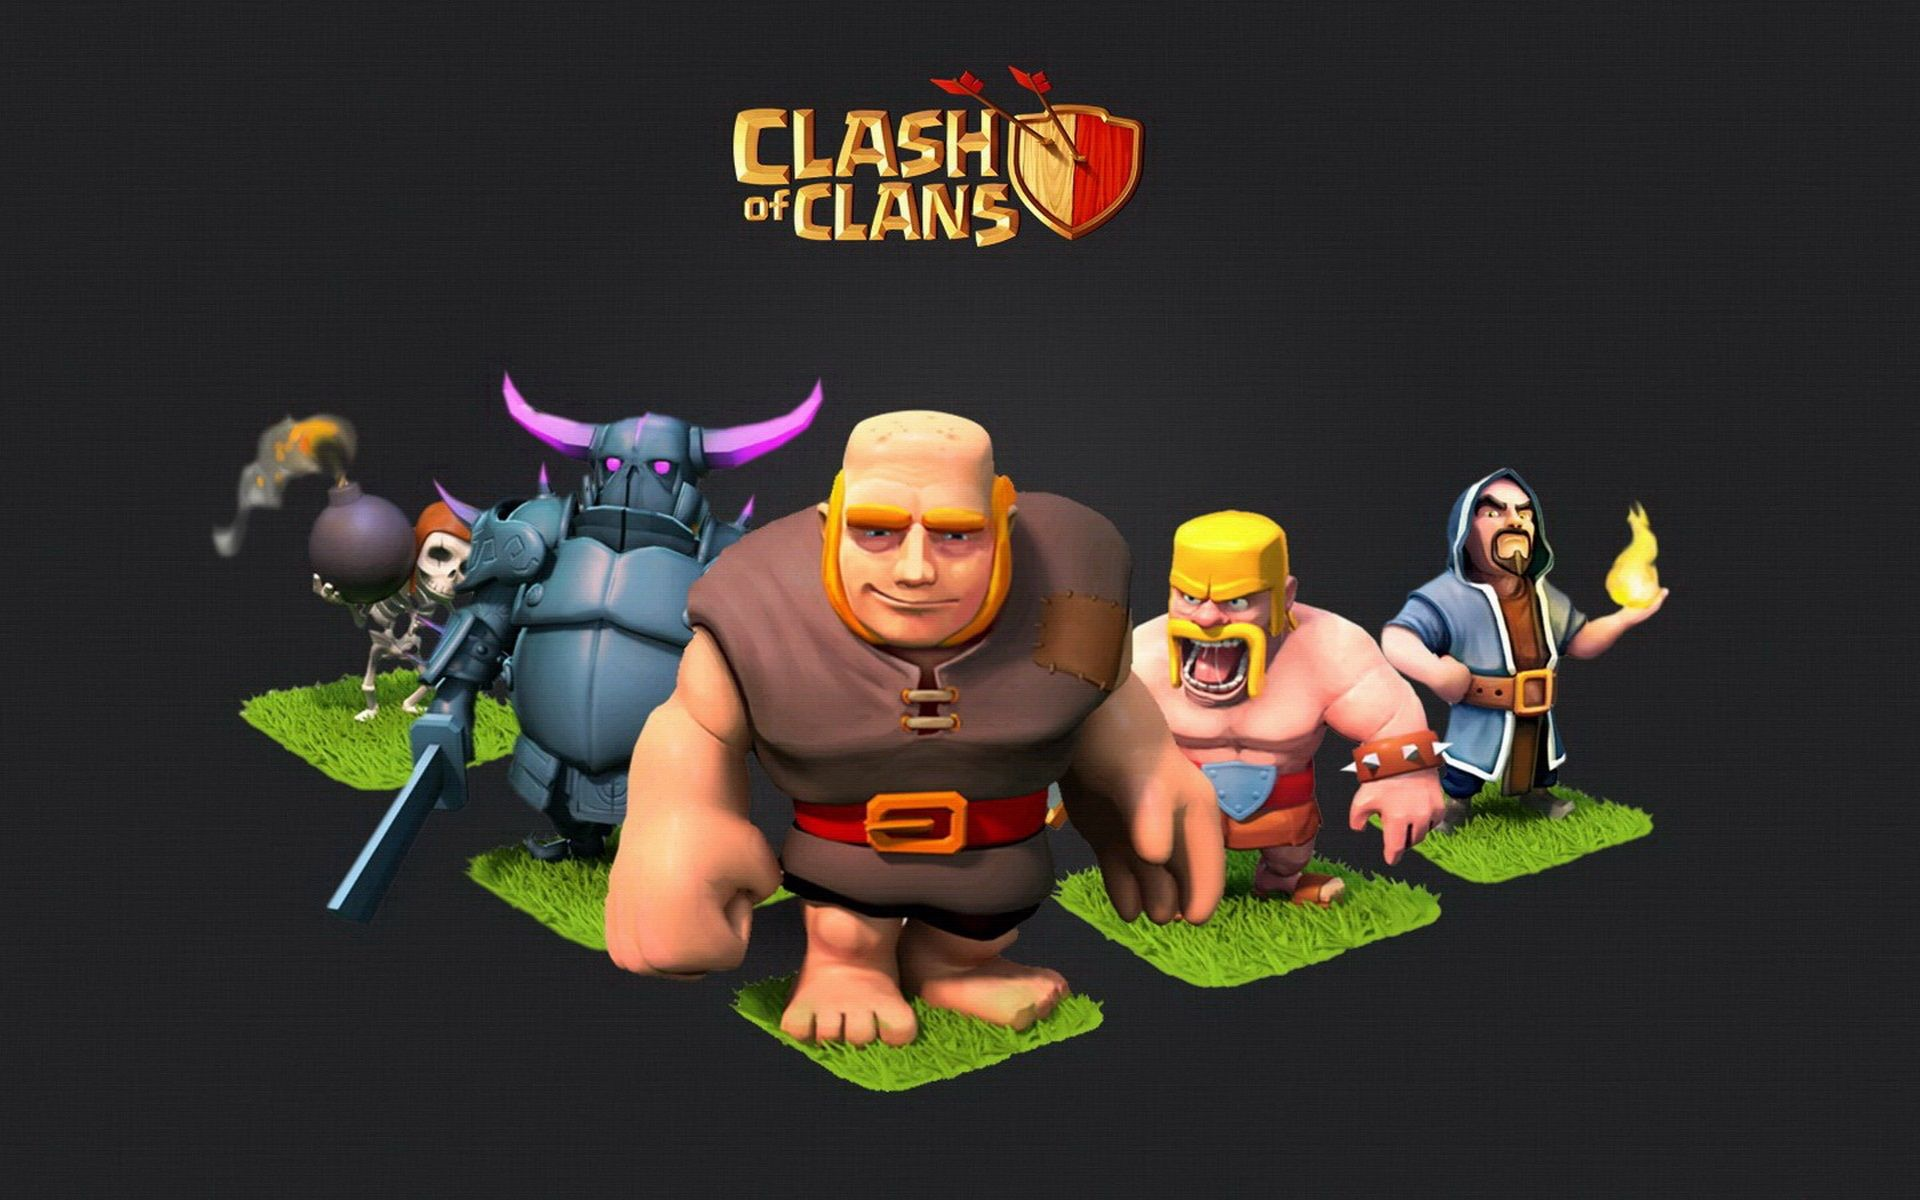 Clash Clans Wallpapers High Quality Download Free Dengan